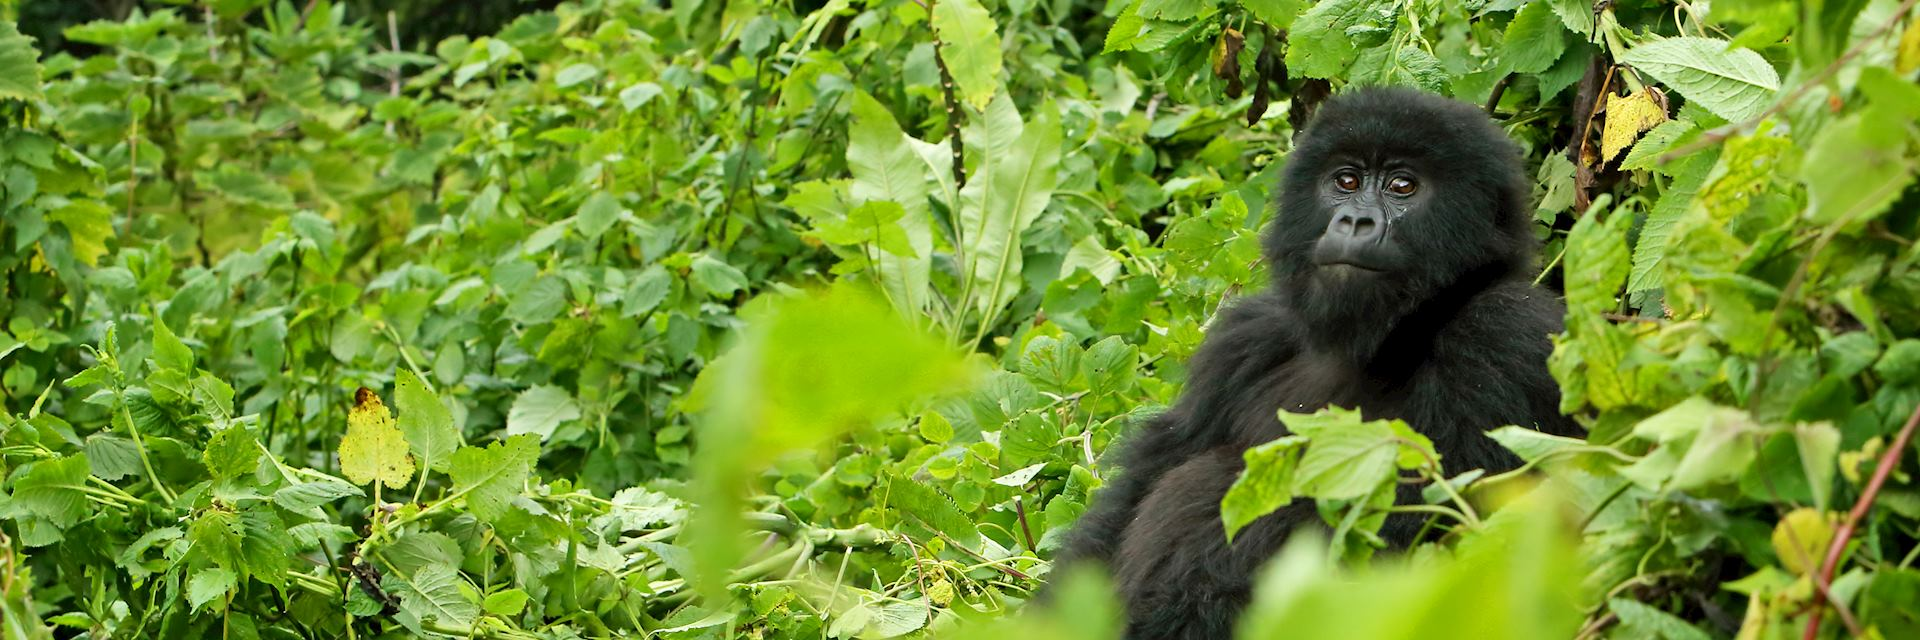 Mountain gorilla in Volcanoes National Park, Rwanda